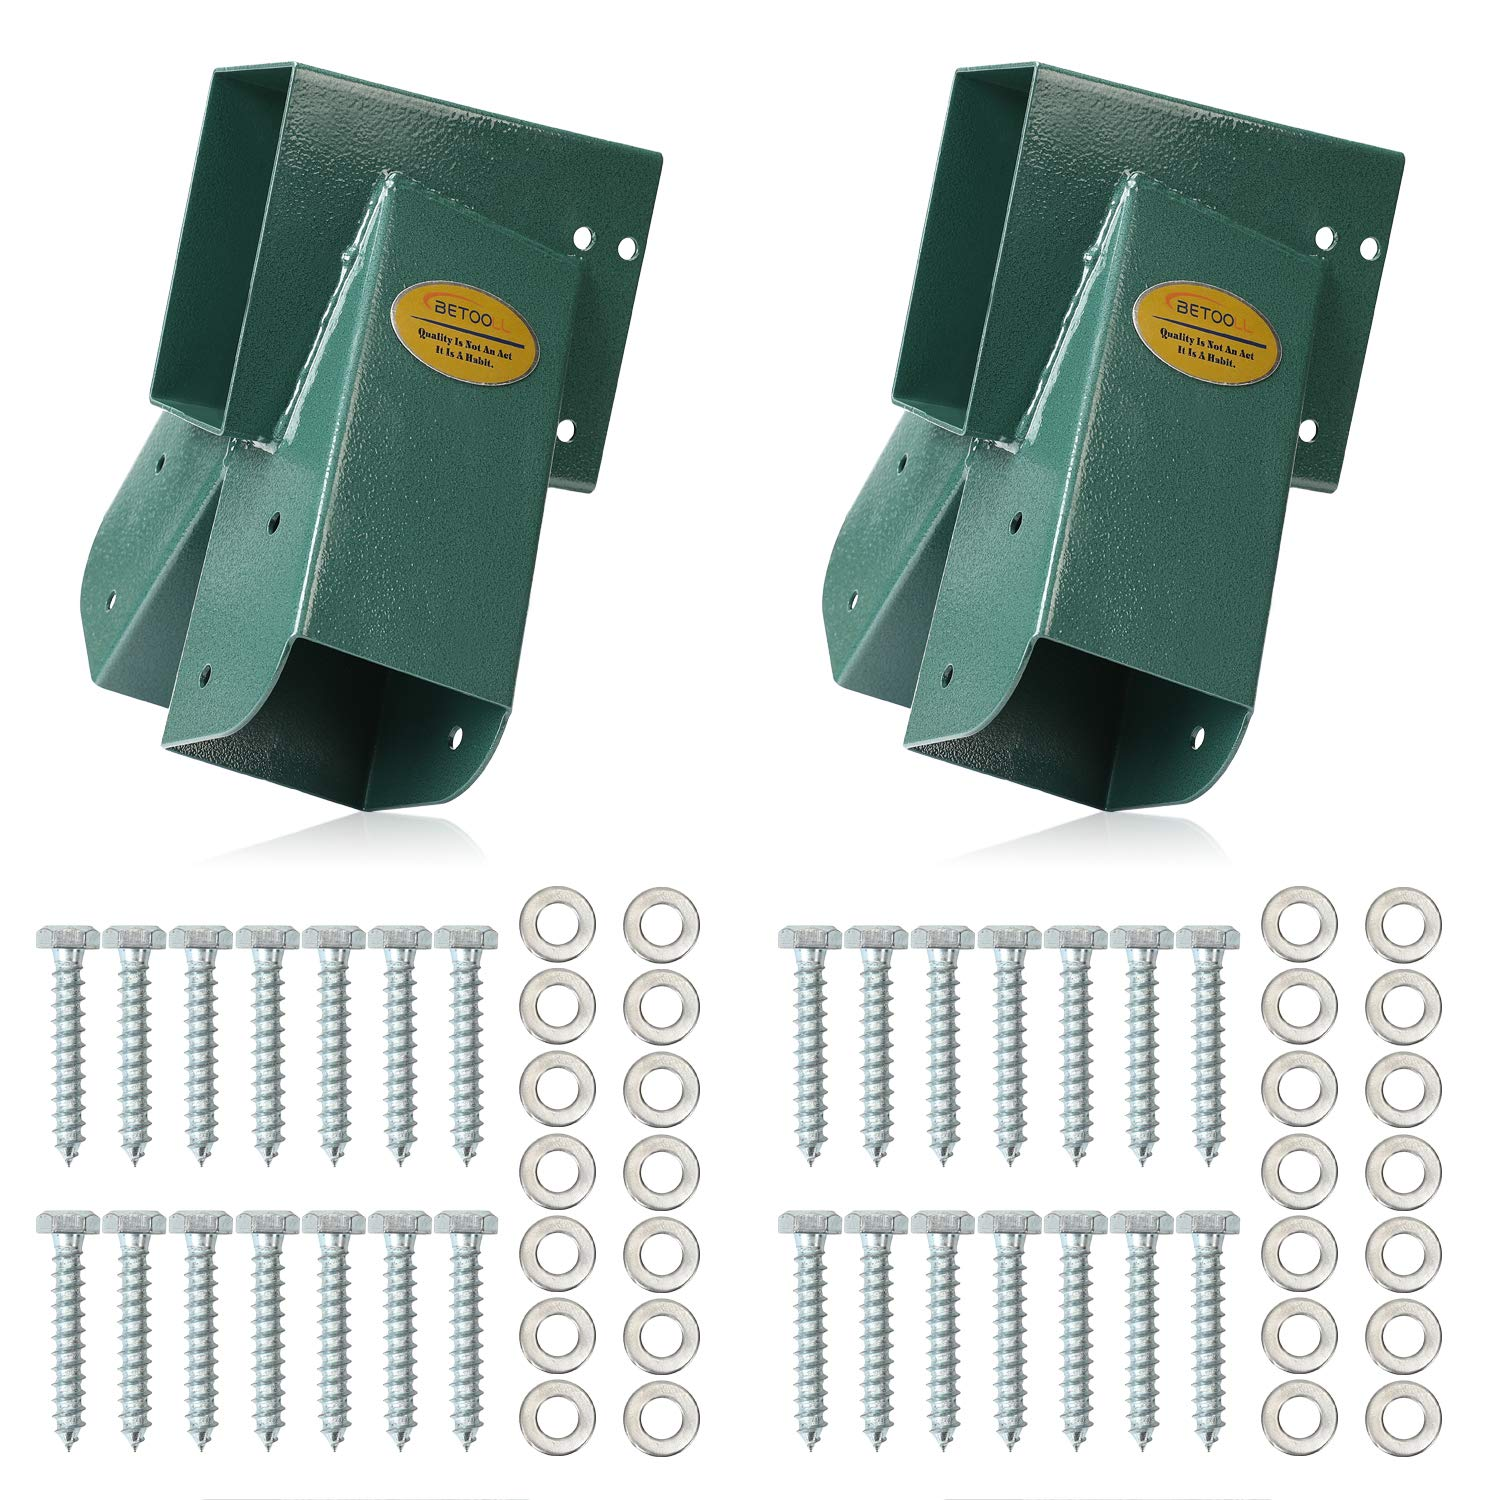 BETOOLL Easy 1-2-3 A-Frame 2 Brackets Swing Set Bracket with Mounting Hardware (Green) by BETOOLL